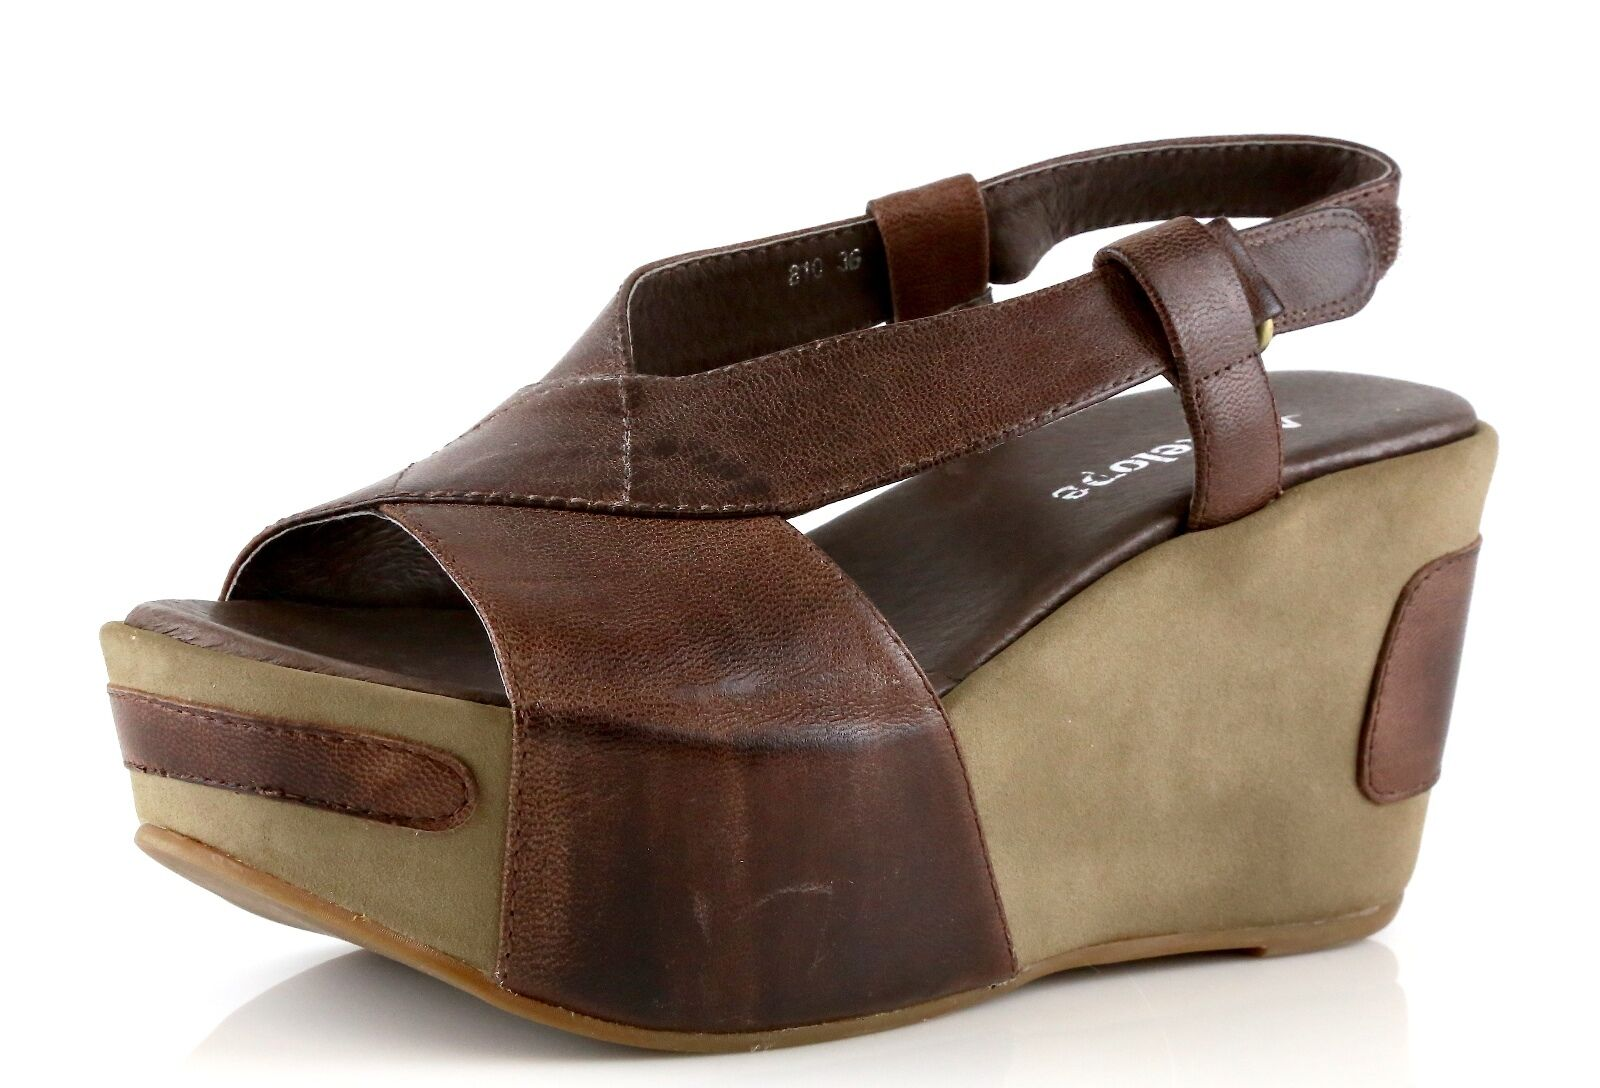 Antelope 810 Brown Leather Ankle Strap Wedge Sandals 8813 Size 36 EU NEW